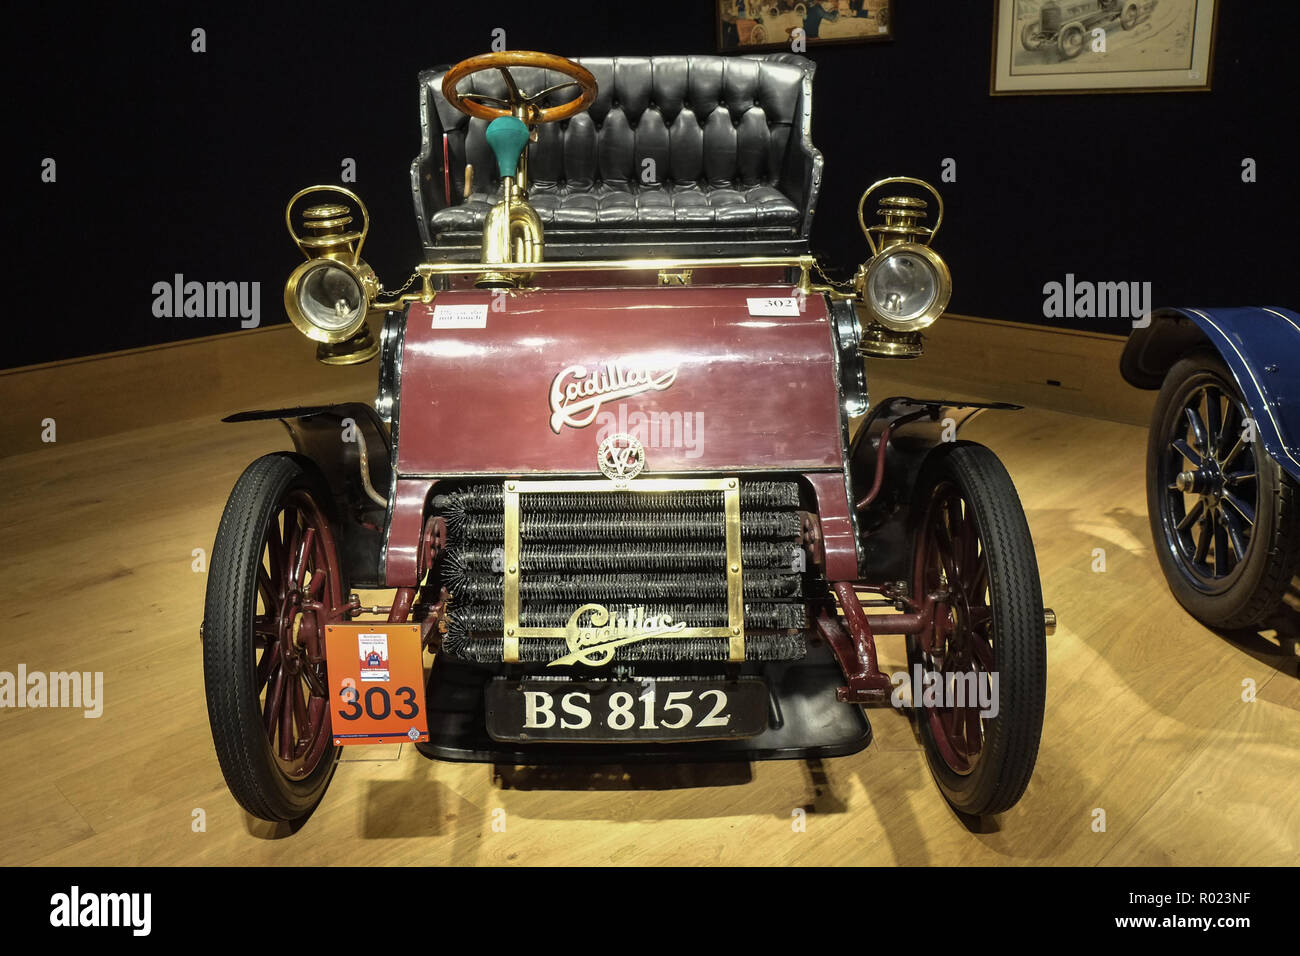 London 1st November 2018.  1904 Cadillac model A 6½HP rear entrance tonneau at Bonhams veteran cars on display at 101 New Bond Street before setting off to take part in the oldest motoring event in the world, The London to Brighton Run.Credit: Claire Doherty/Alamy Live News - Stock Image